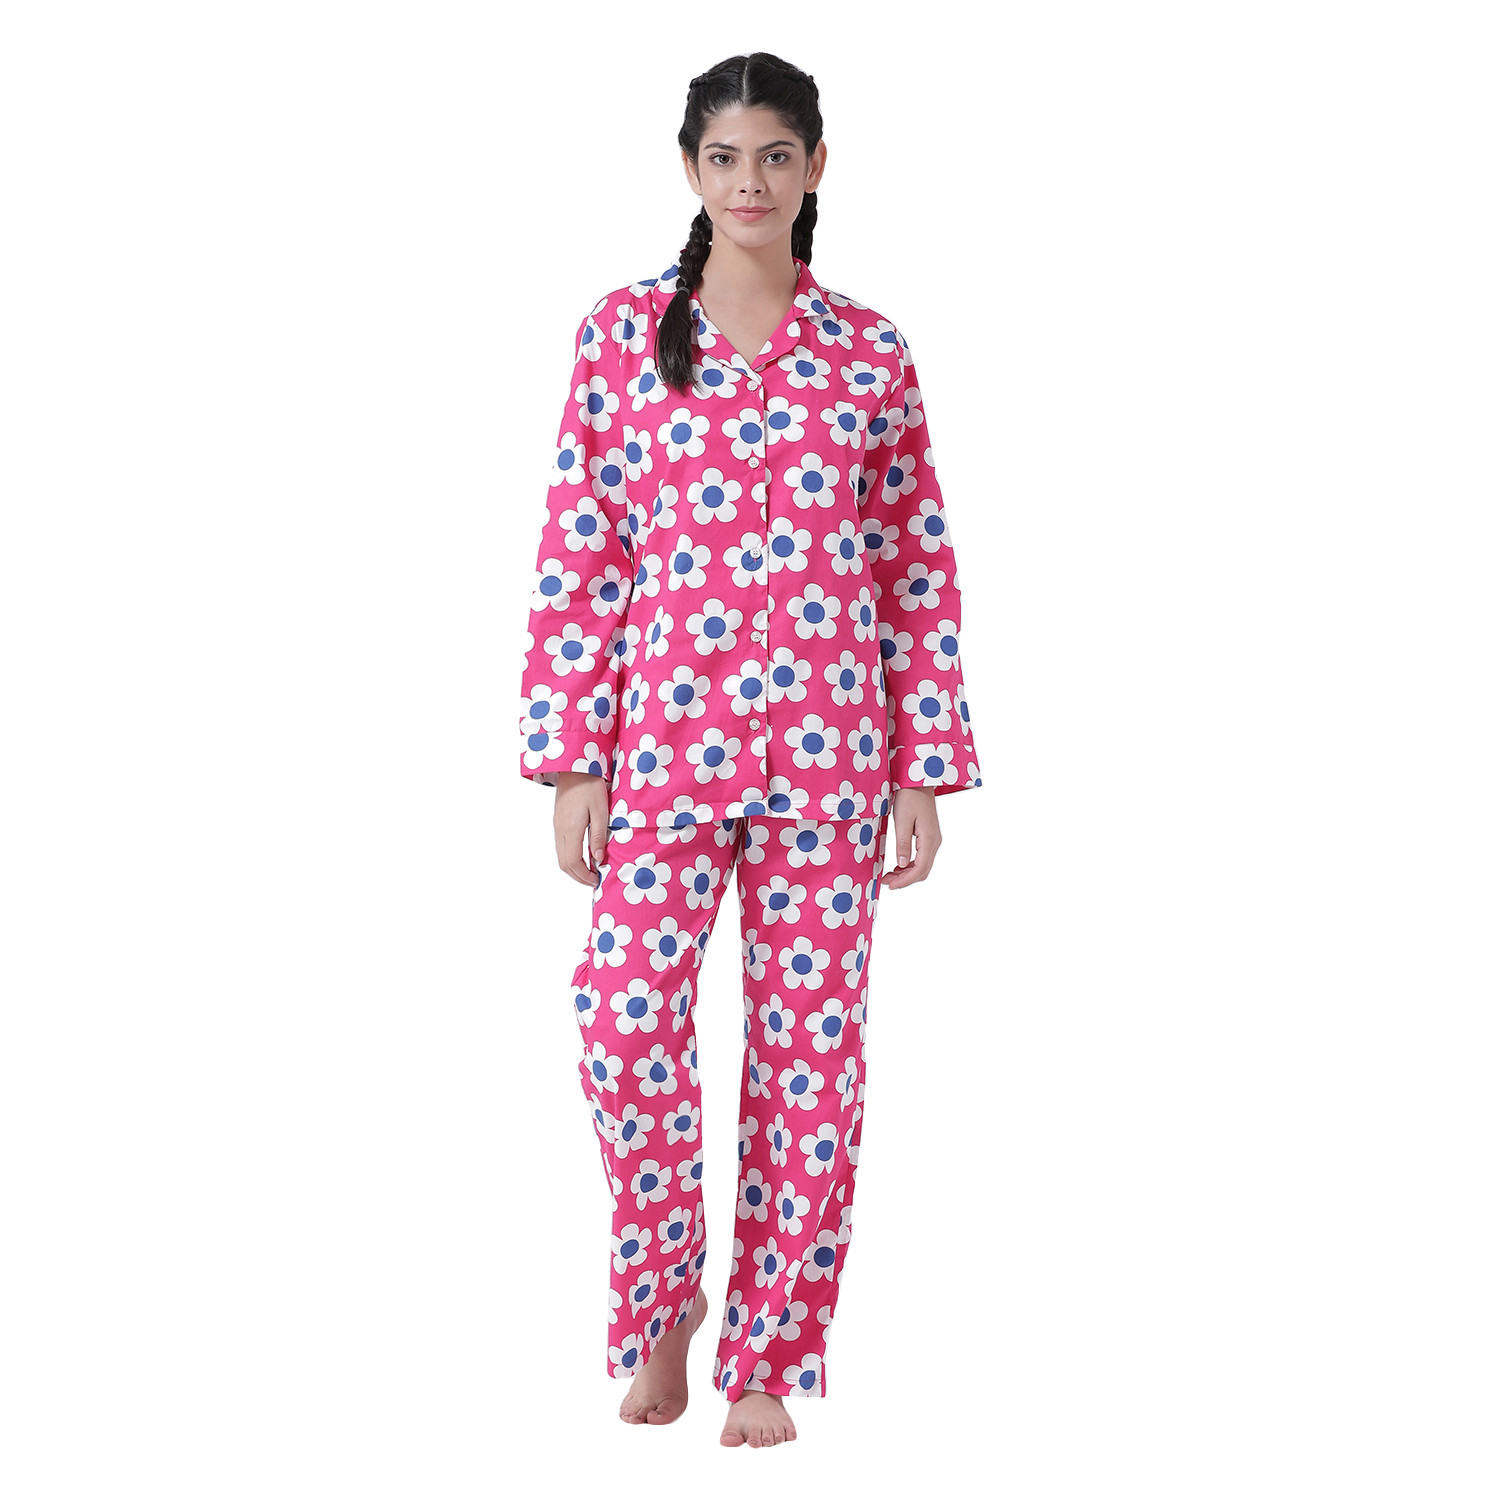 Flower Power Women's Cotton Night Suit